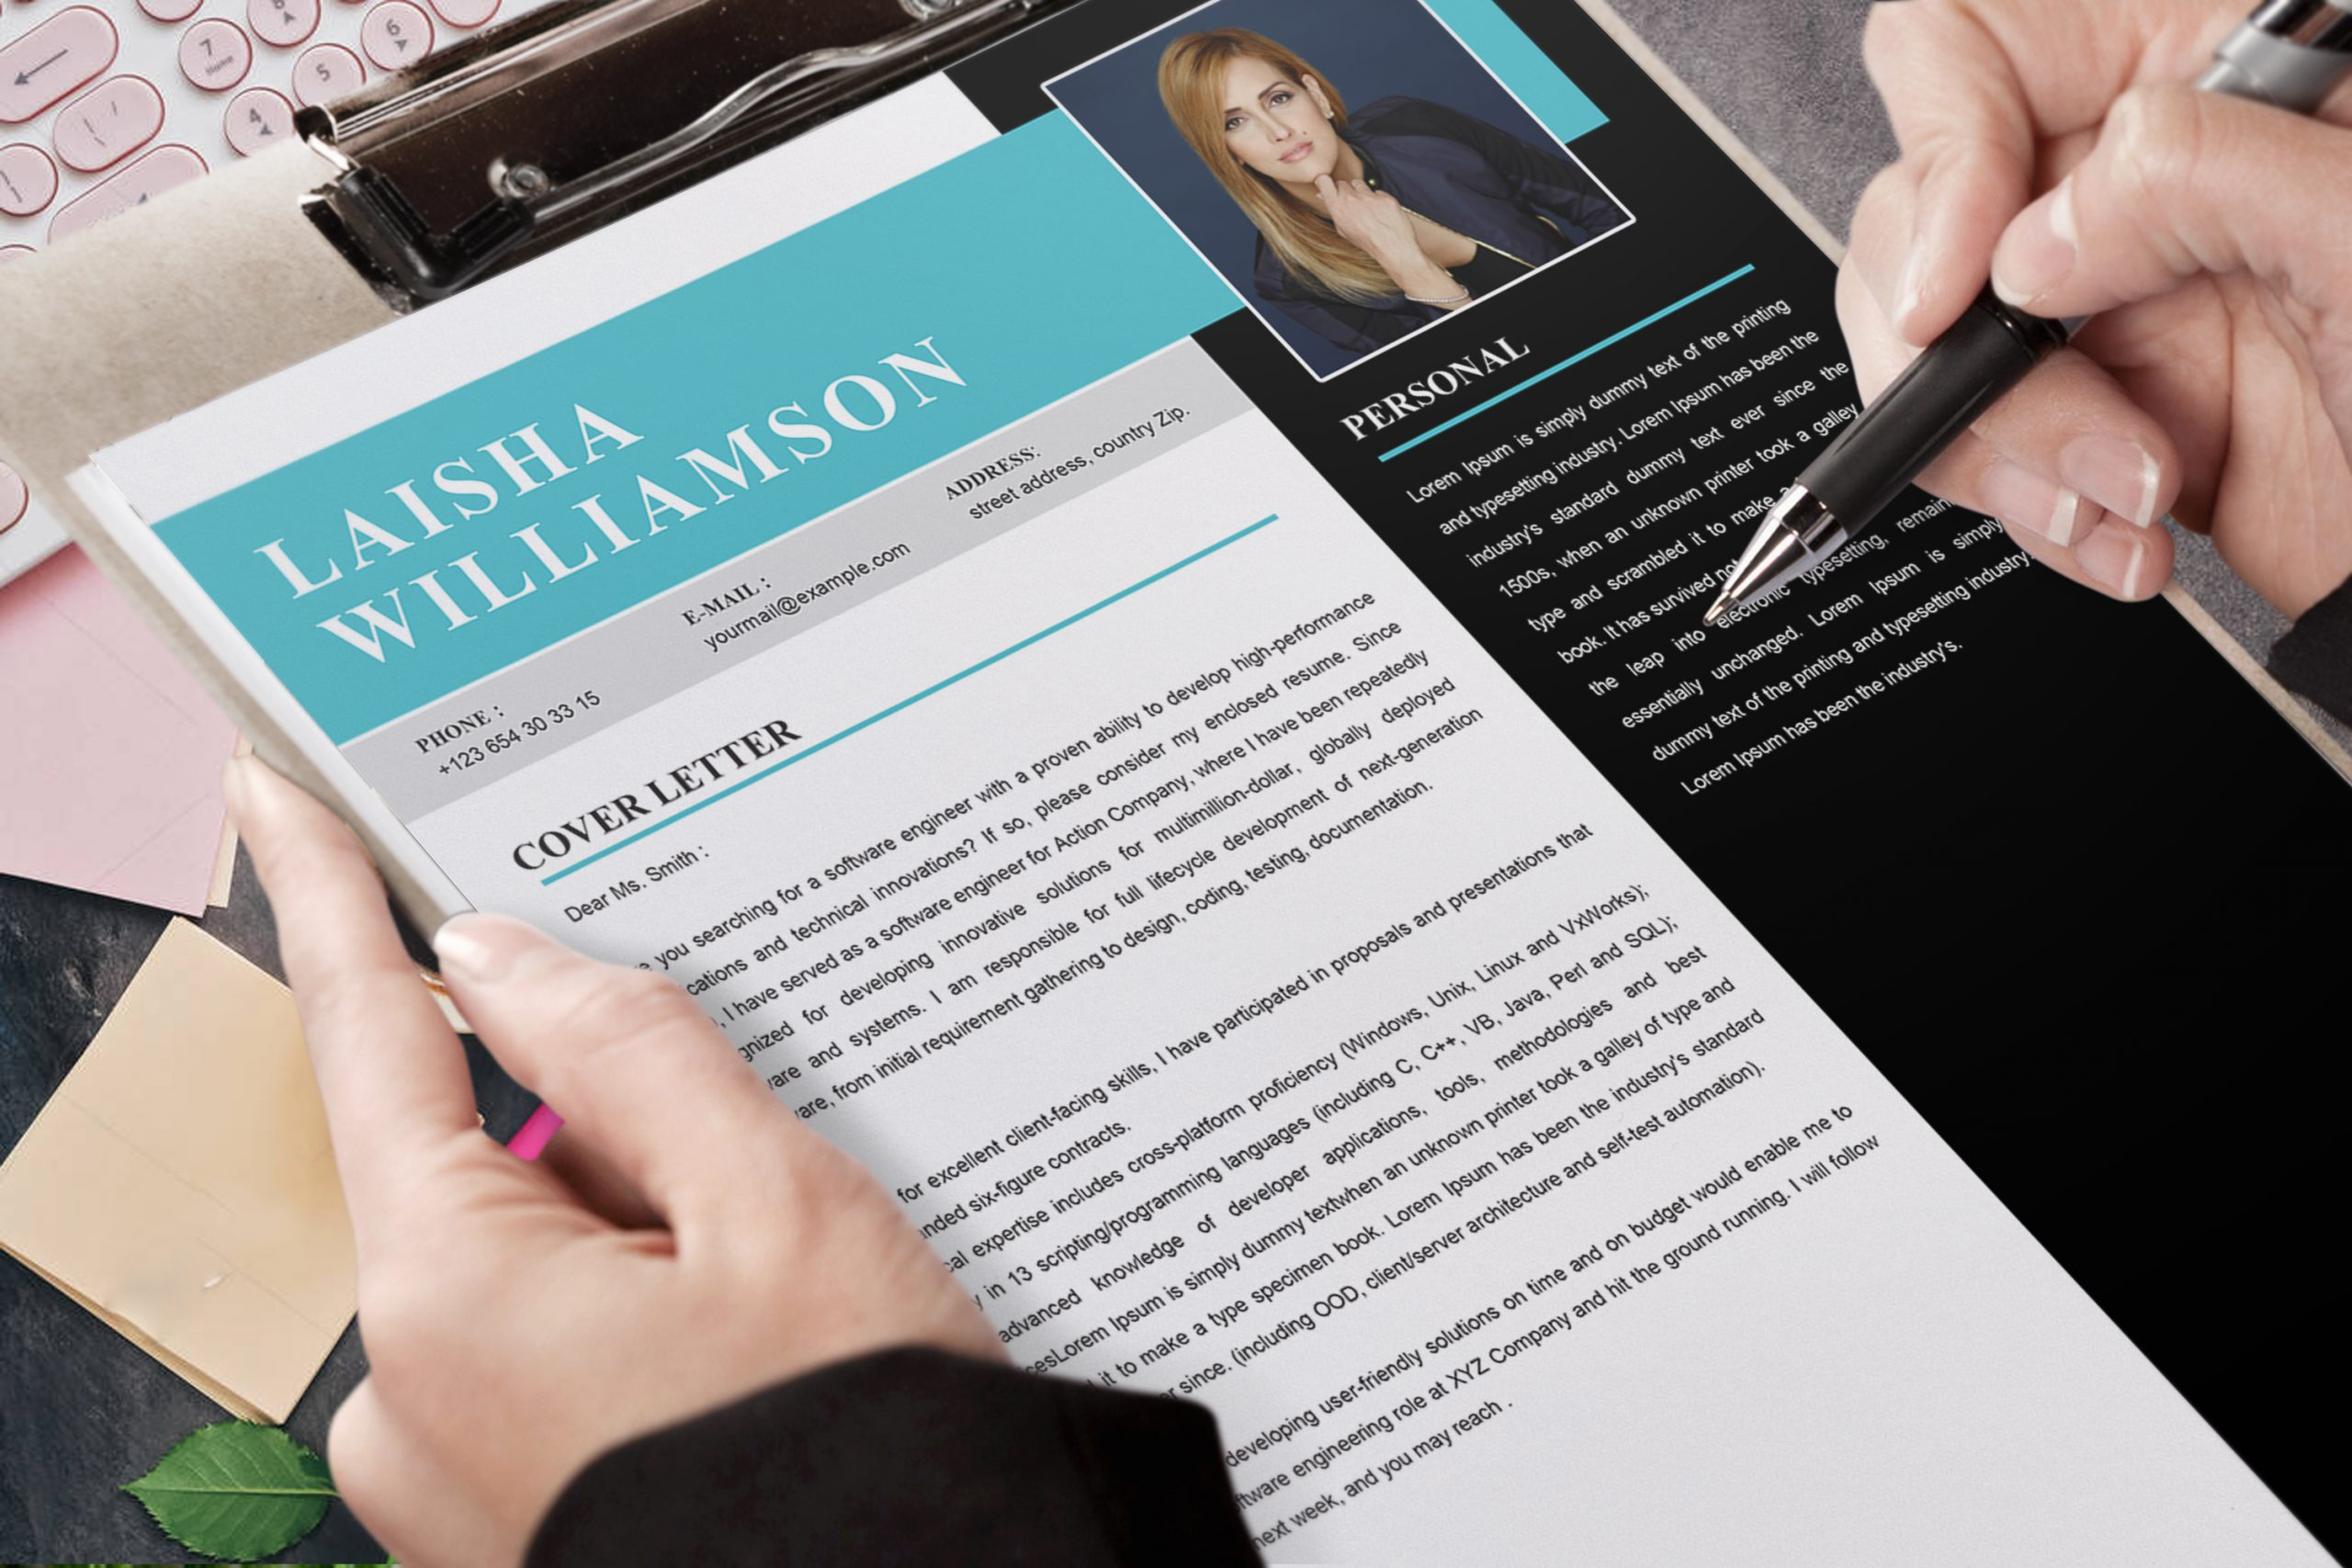 Modern-Product-Manager-Cover-Letter-Template-4